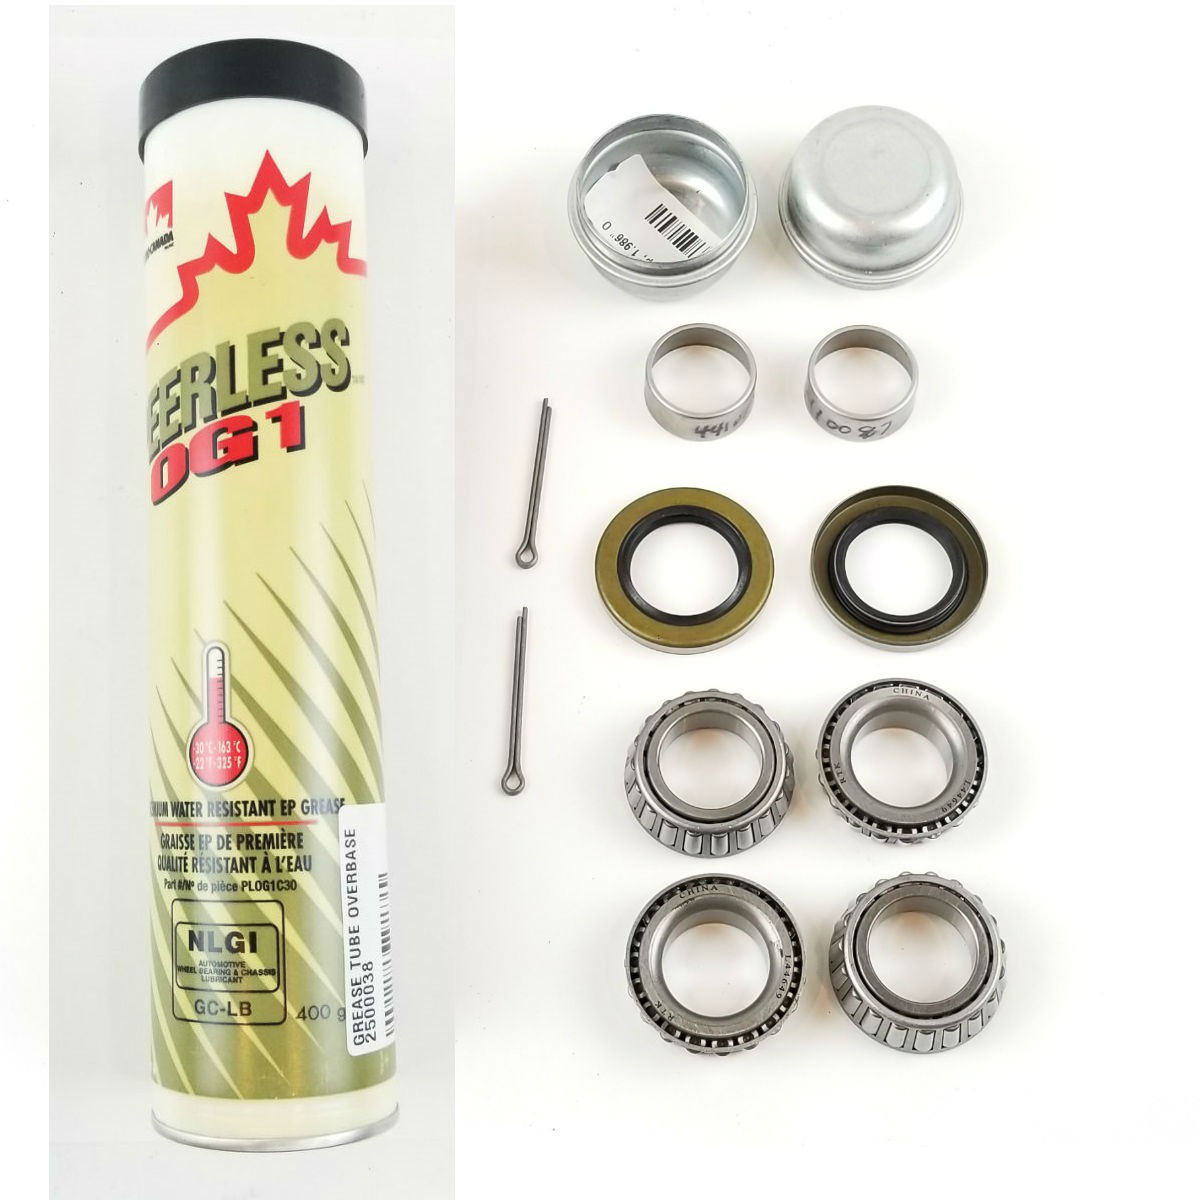 Bearing Kit For Shorelander Boat Trailers With 1-1//16 inches Spindles